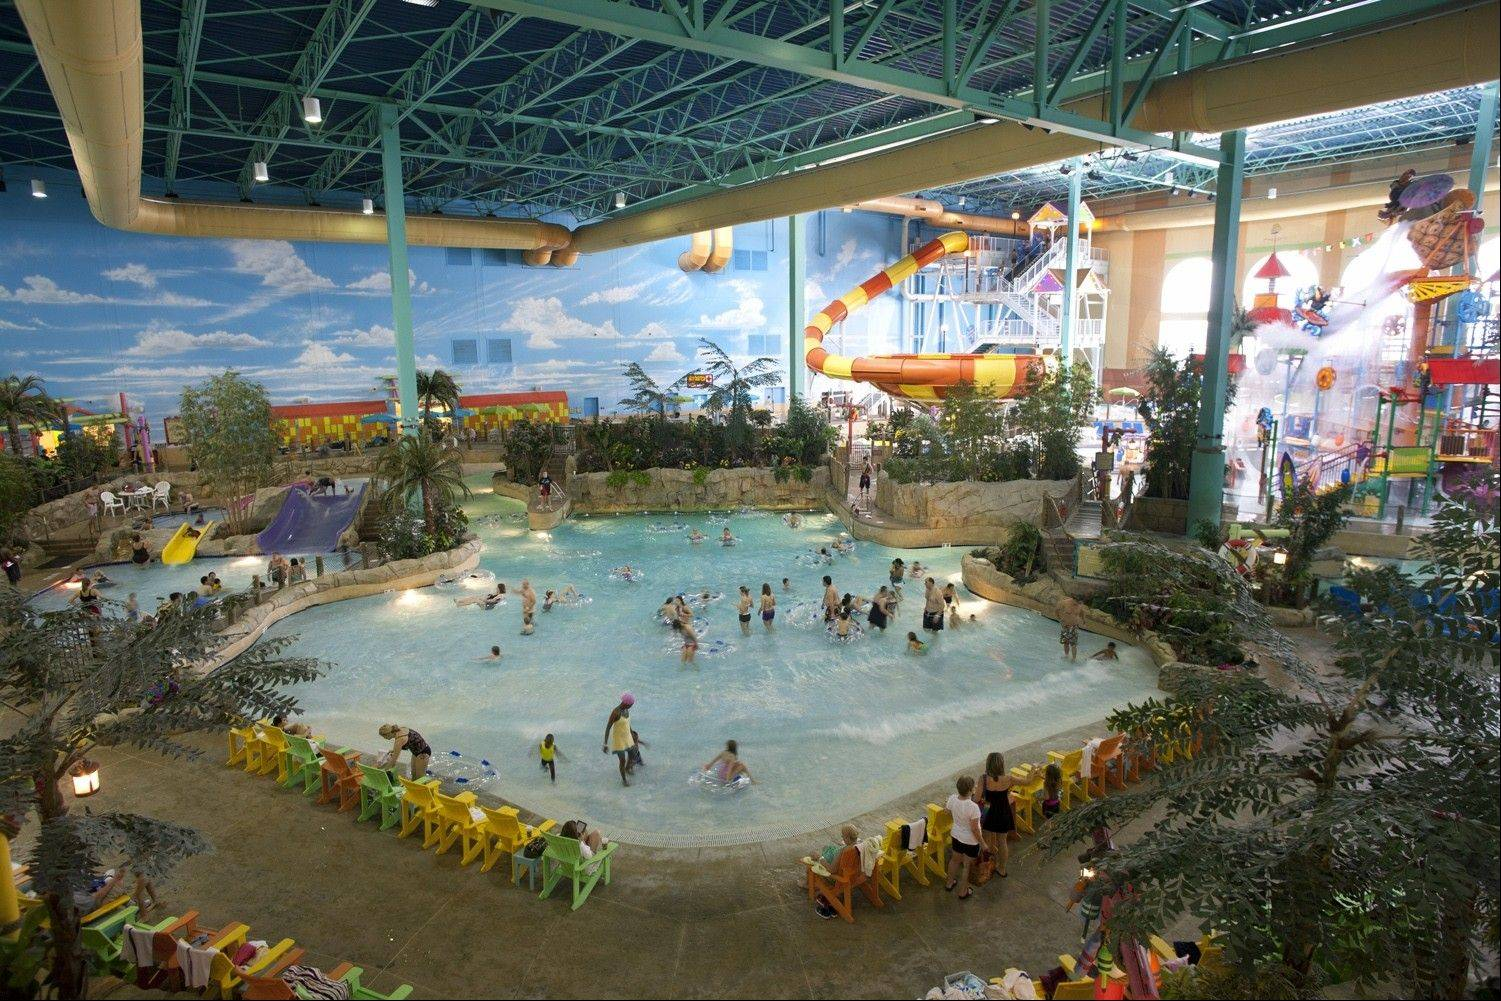 Gurnee's KeyLime Cove Waterpark Resort is under new management. Veracity Hospitality — a firm founded by the resort's former general manager — was awarded a management contract by an advisory board representing the resort's owners.